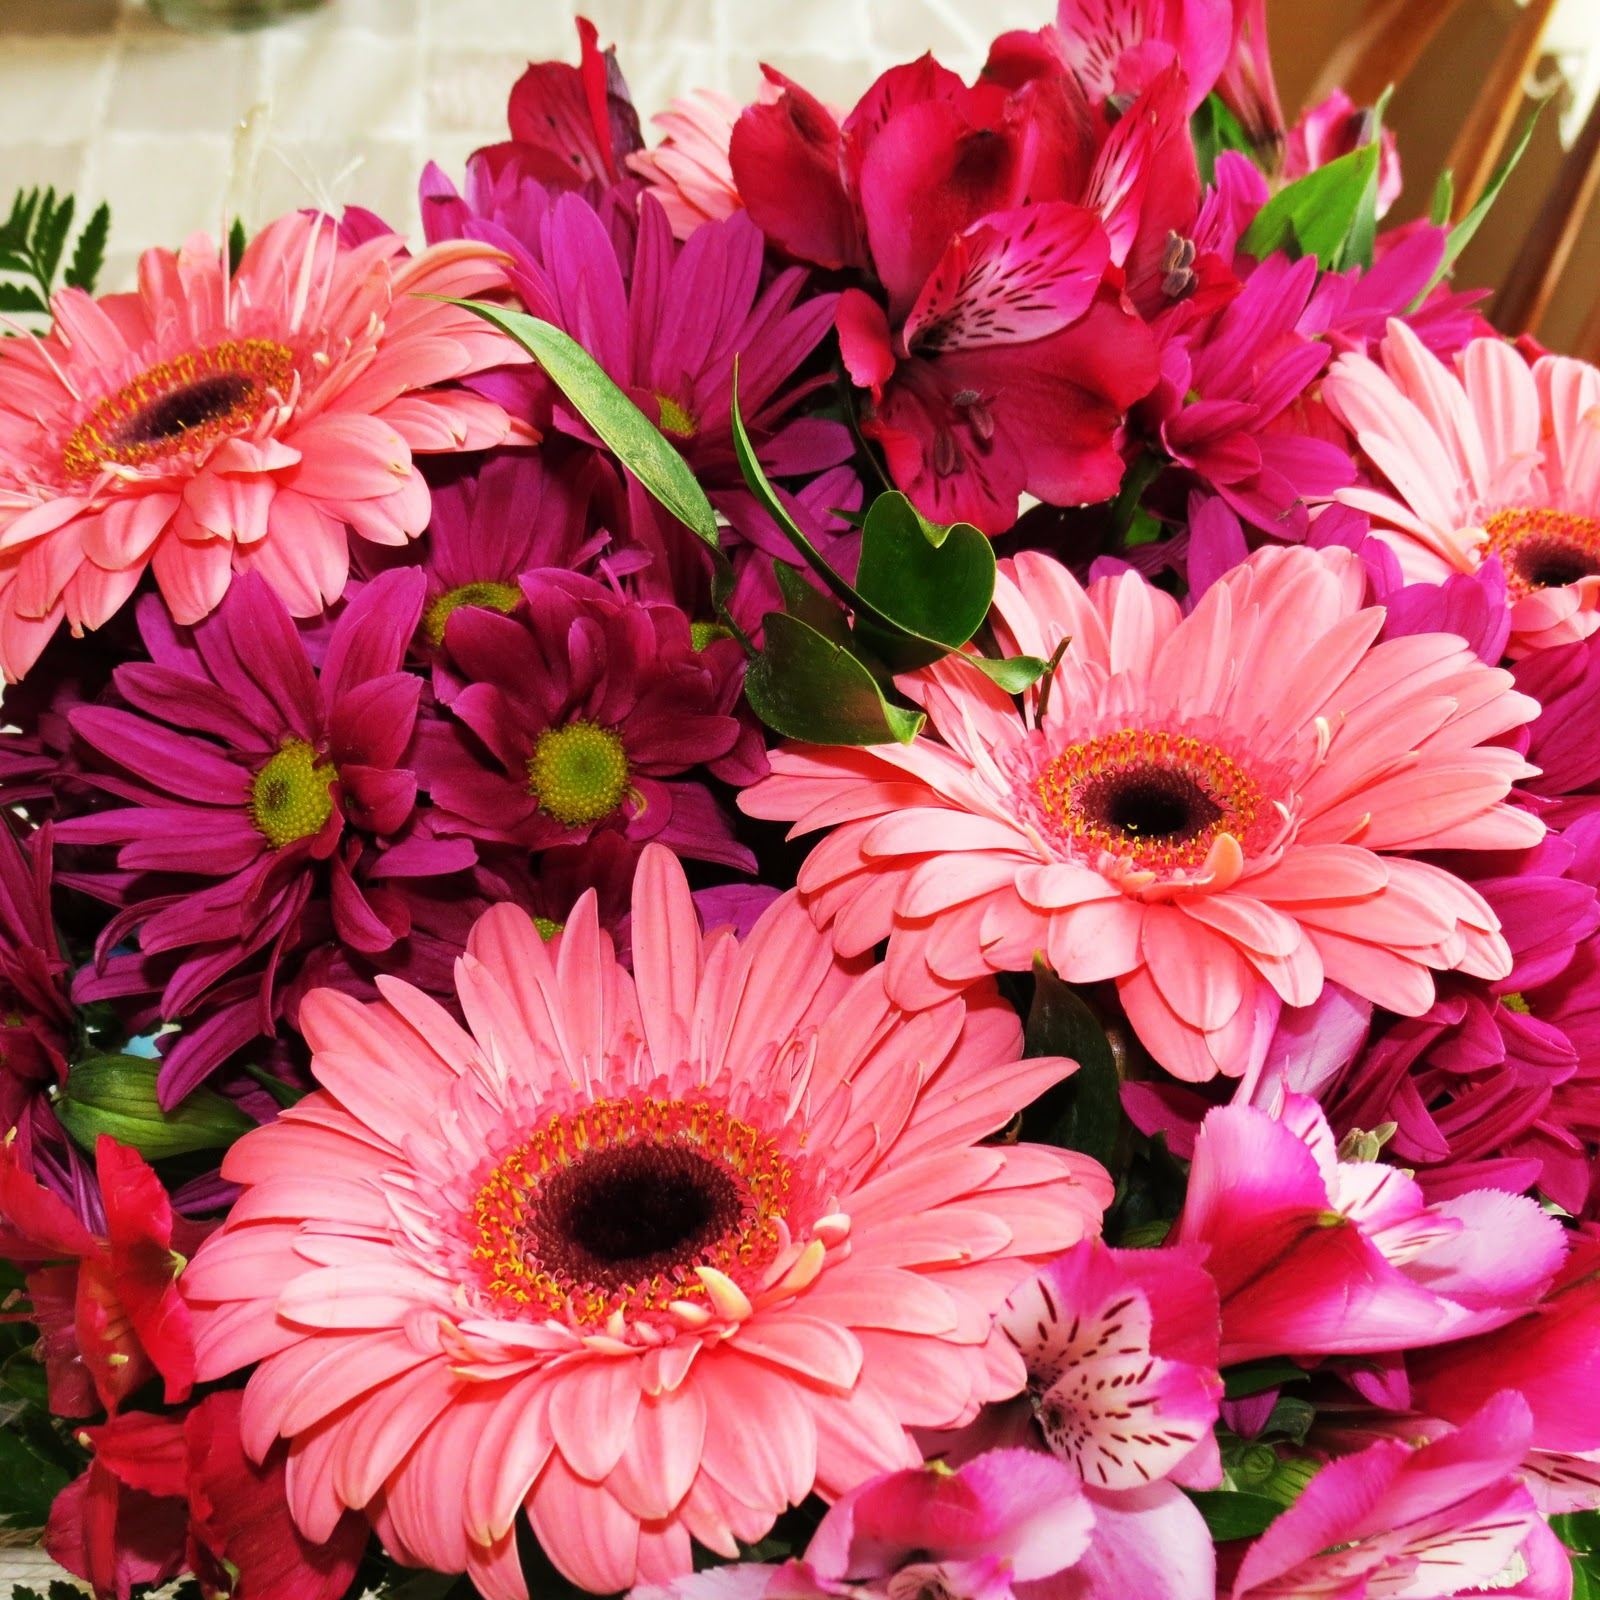 Pictures Of Flower Bouquets For Birthdays